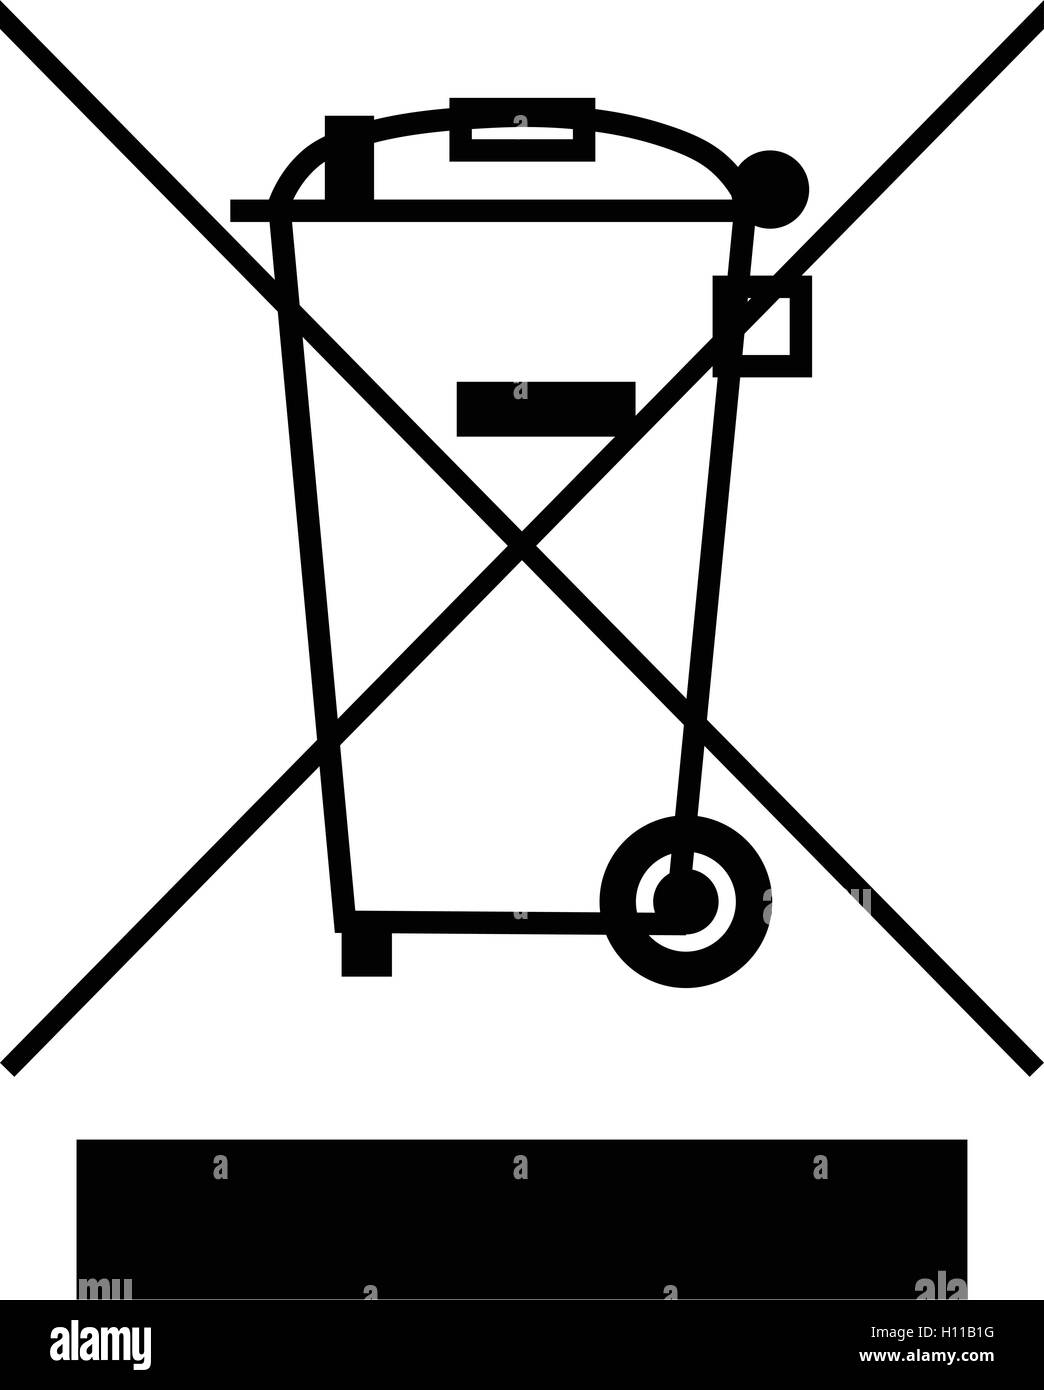 The Crossed Out Wheelie Bin With Bar Symbol Waste Electrical And